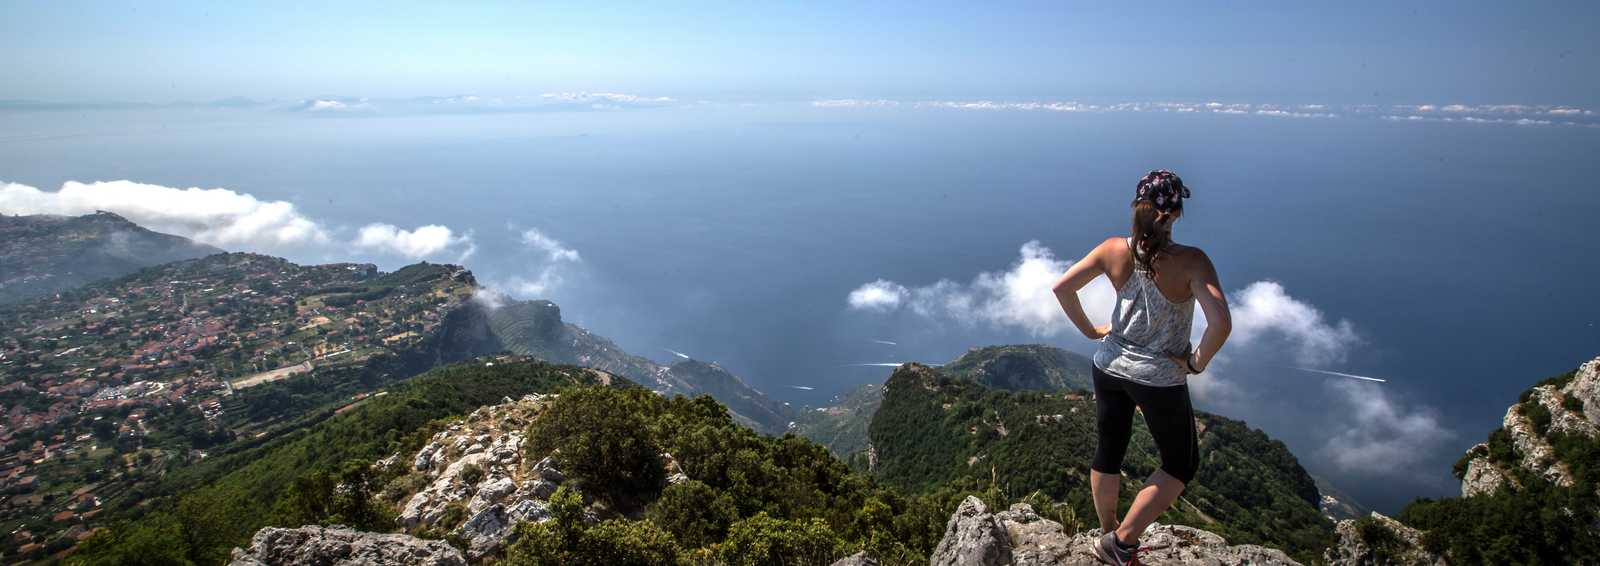 Female adventurer looking out over the Amalfi Coast